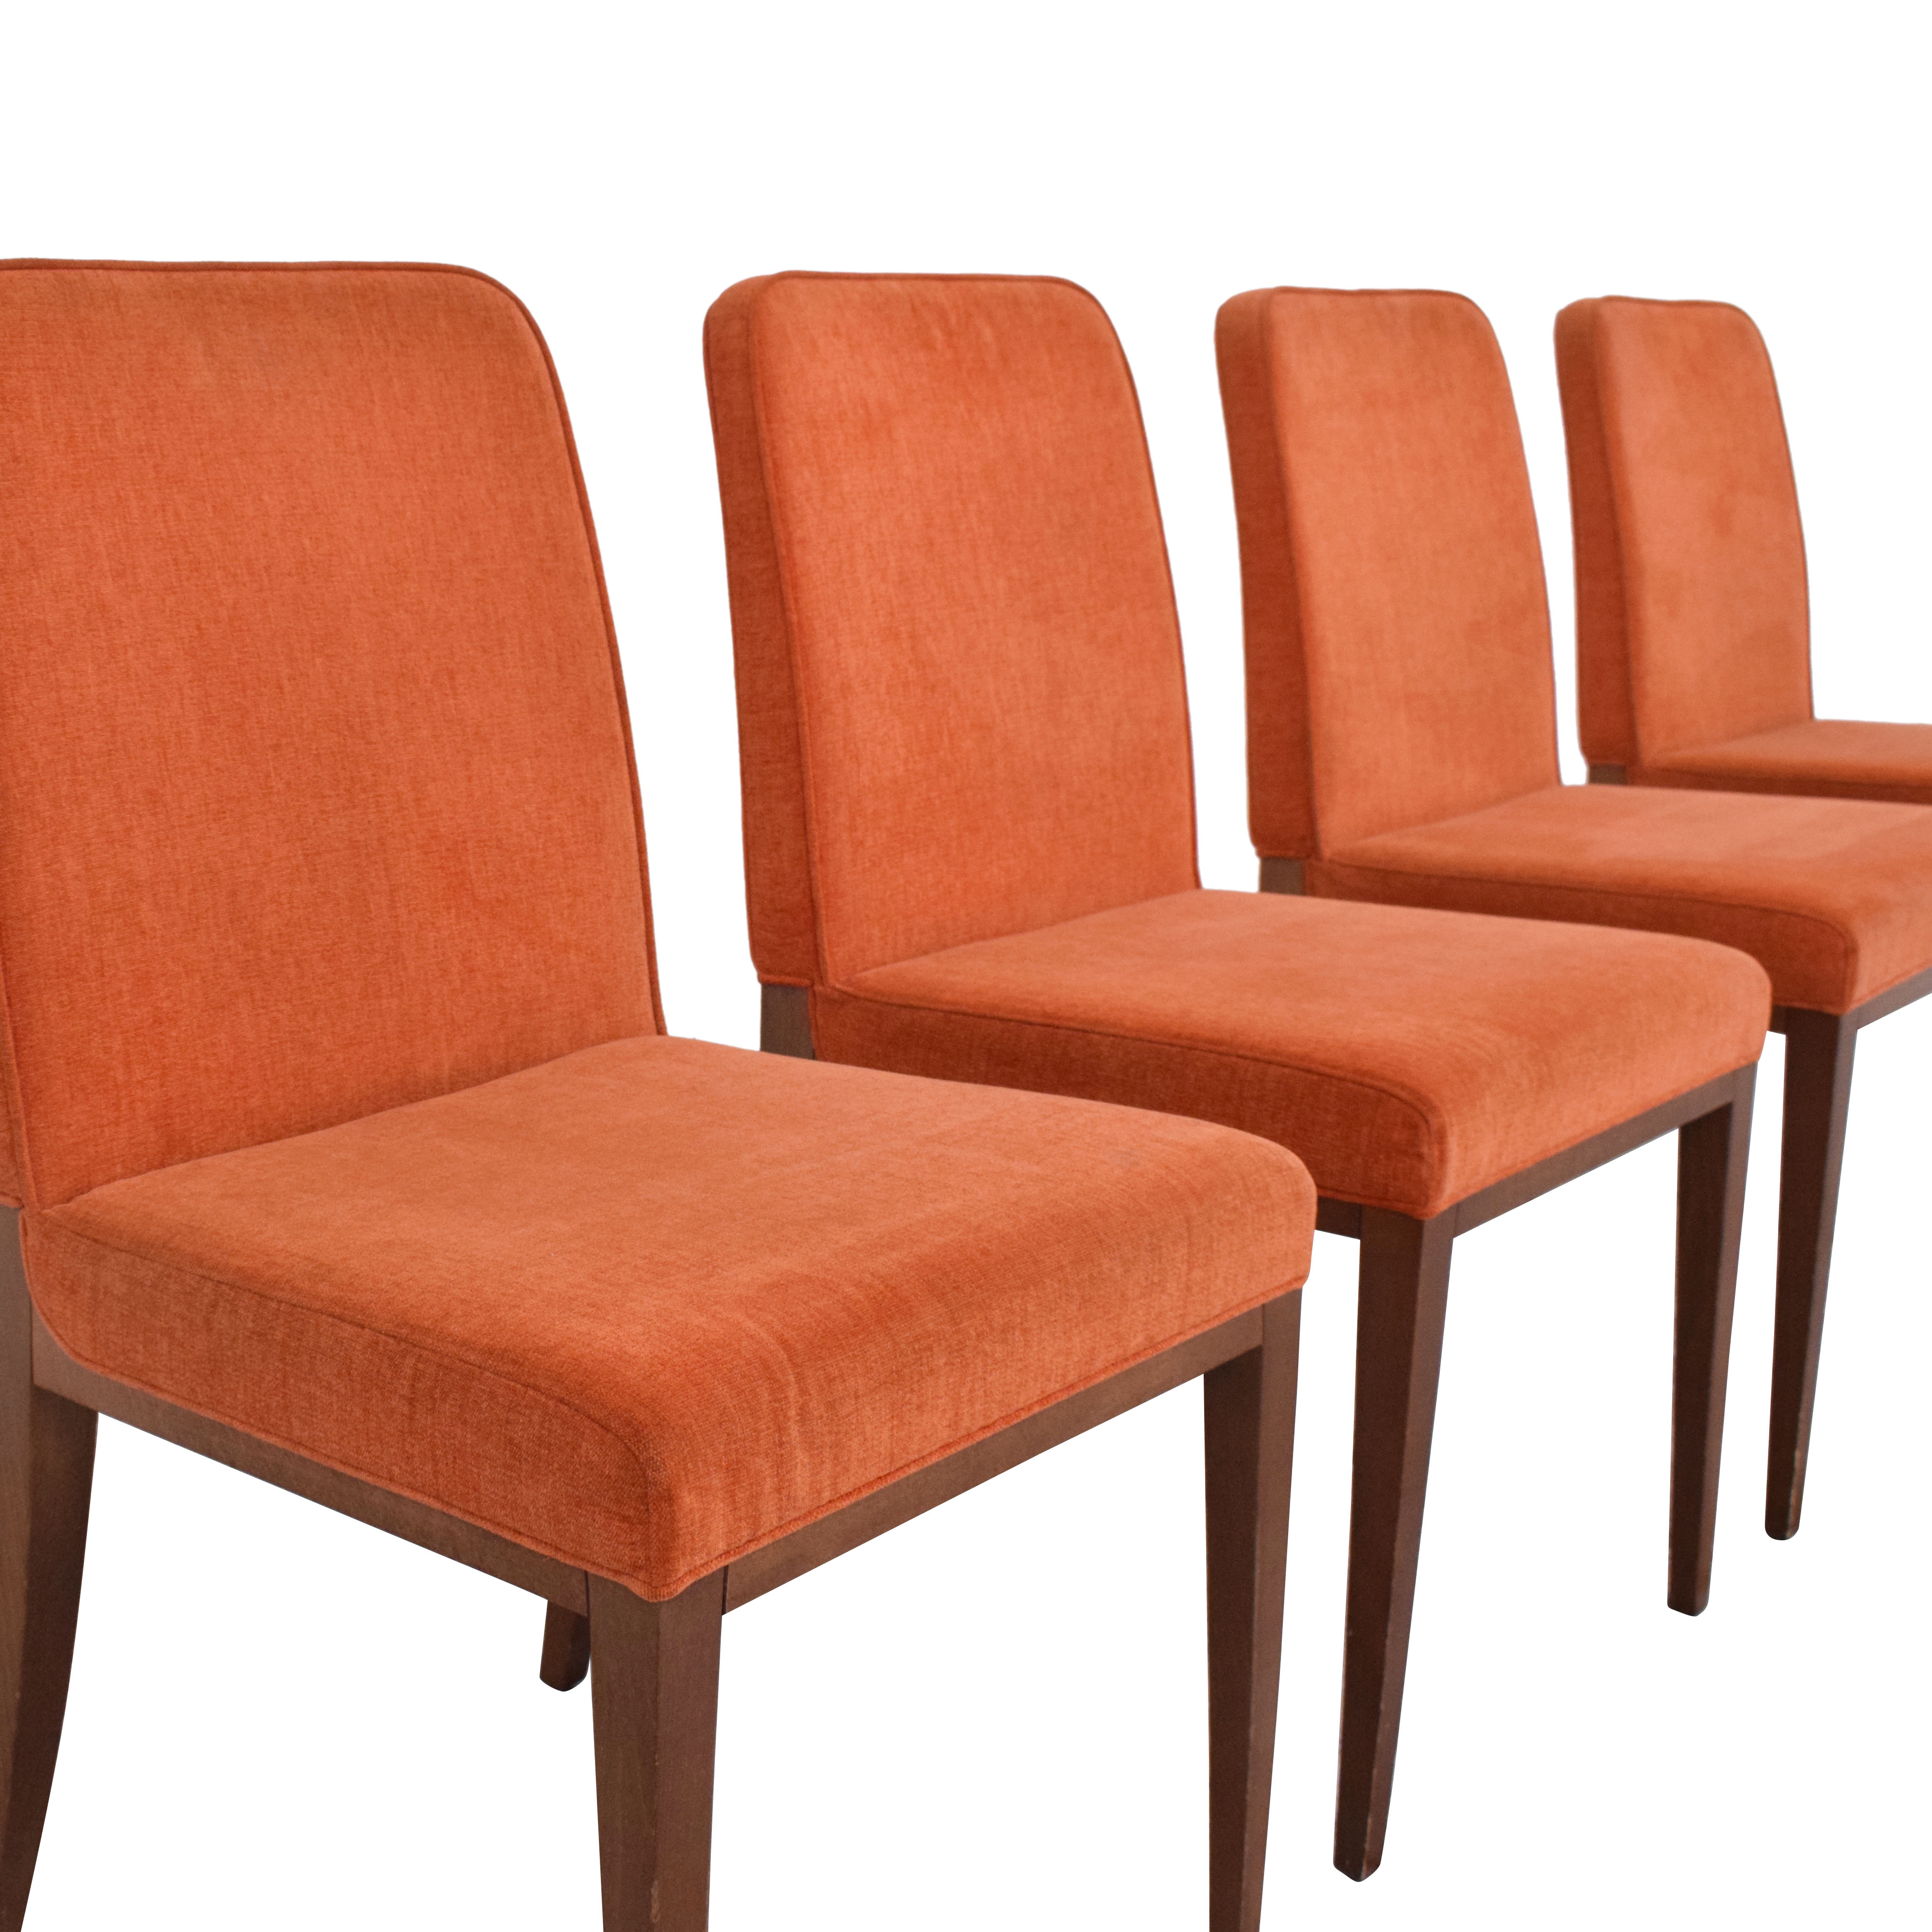 Montbel Montbel Dining Chairs coupon